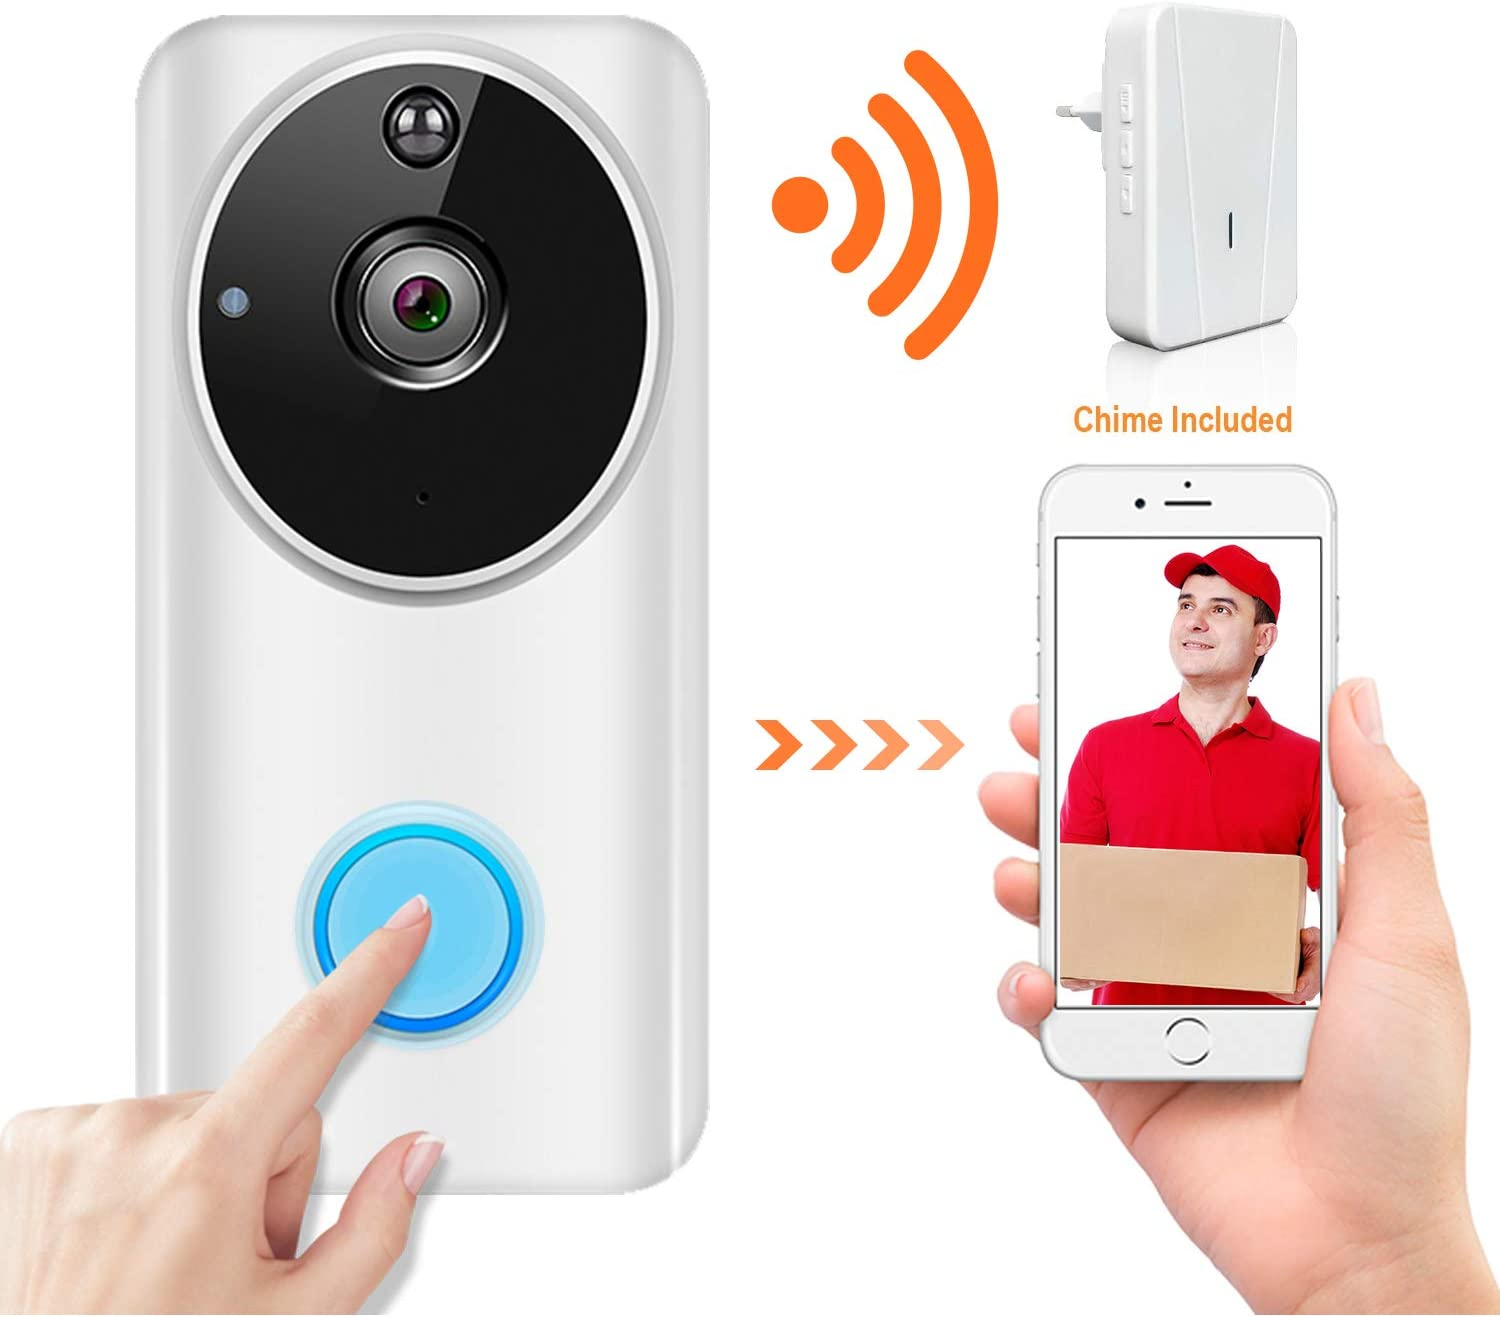 Wireless Video Doorbell Wi-Fi Enabled, Smart Home Door Bell 1080P Security Camera with Motion Detection, Real-Time Two-Way Video Intercom, Night Vision, Supports SD Card, with Chime and Battery